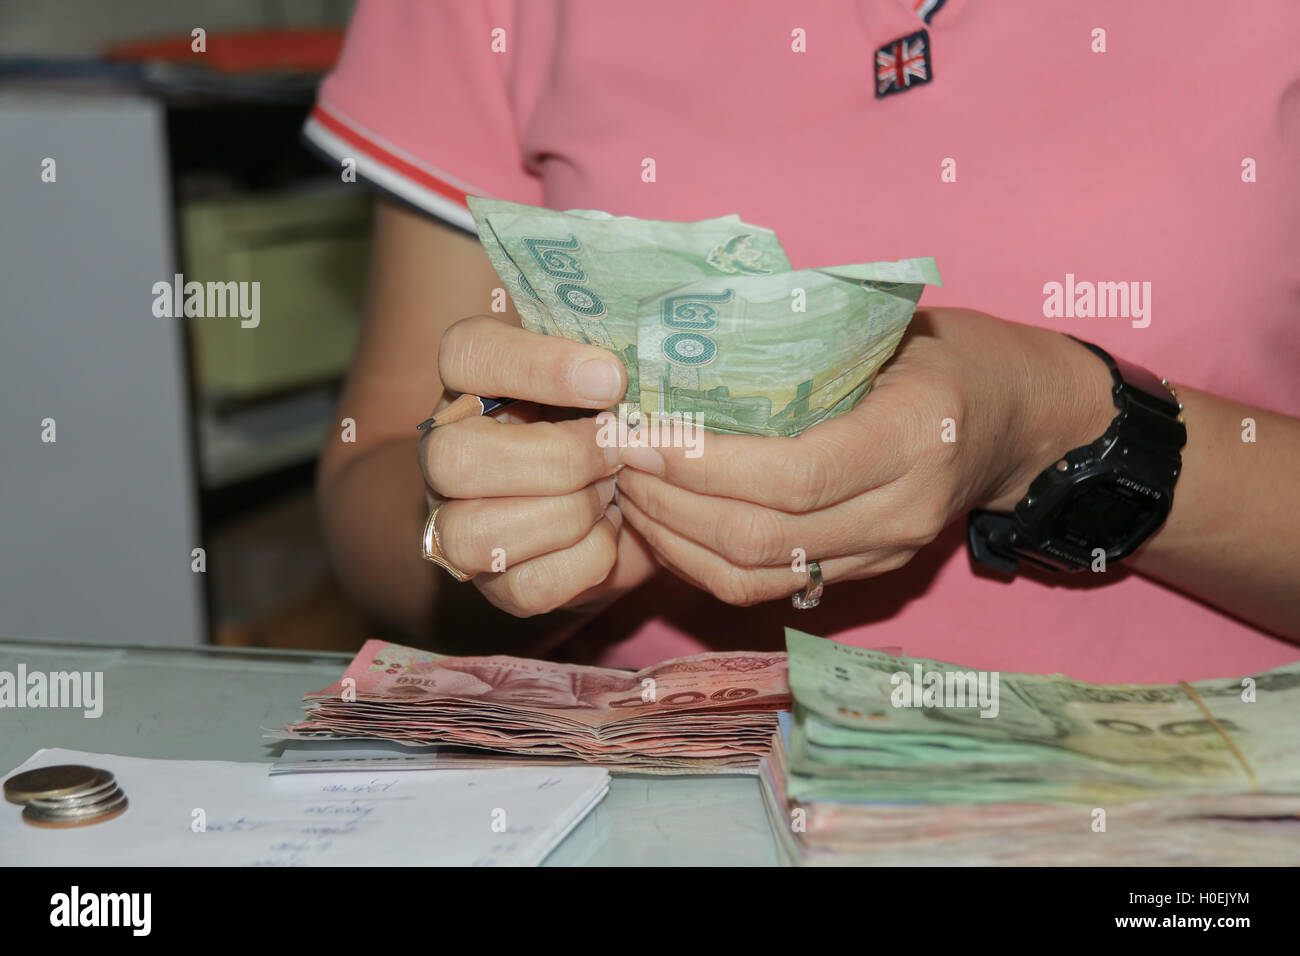 Asian woman counting Thailand Notes are represented on the exchange. This can be used to pay legal tender. - Stock Image